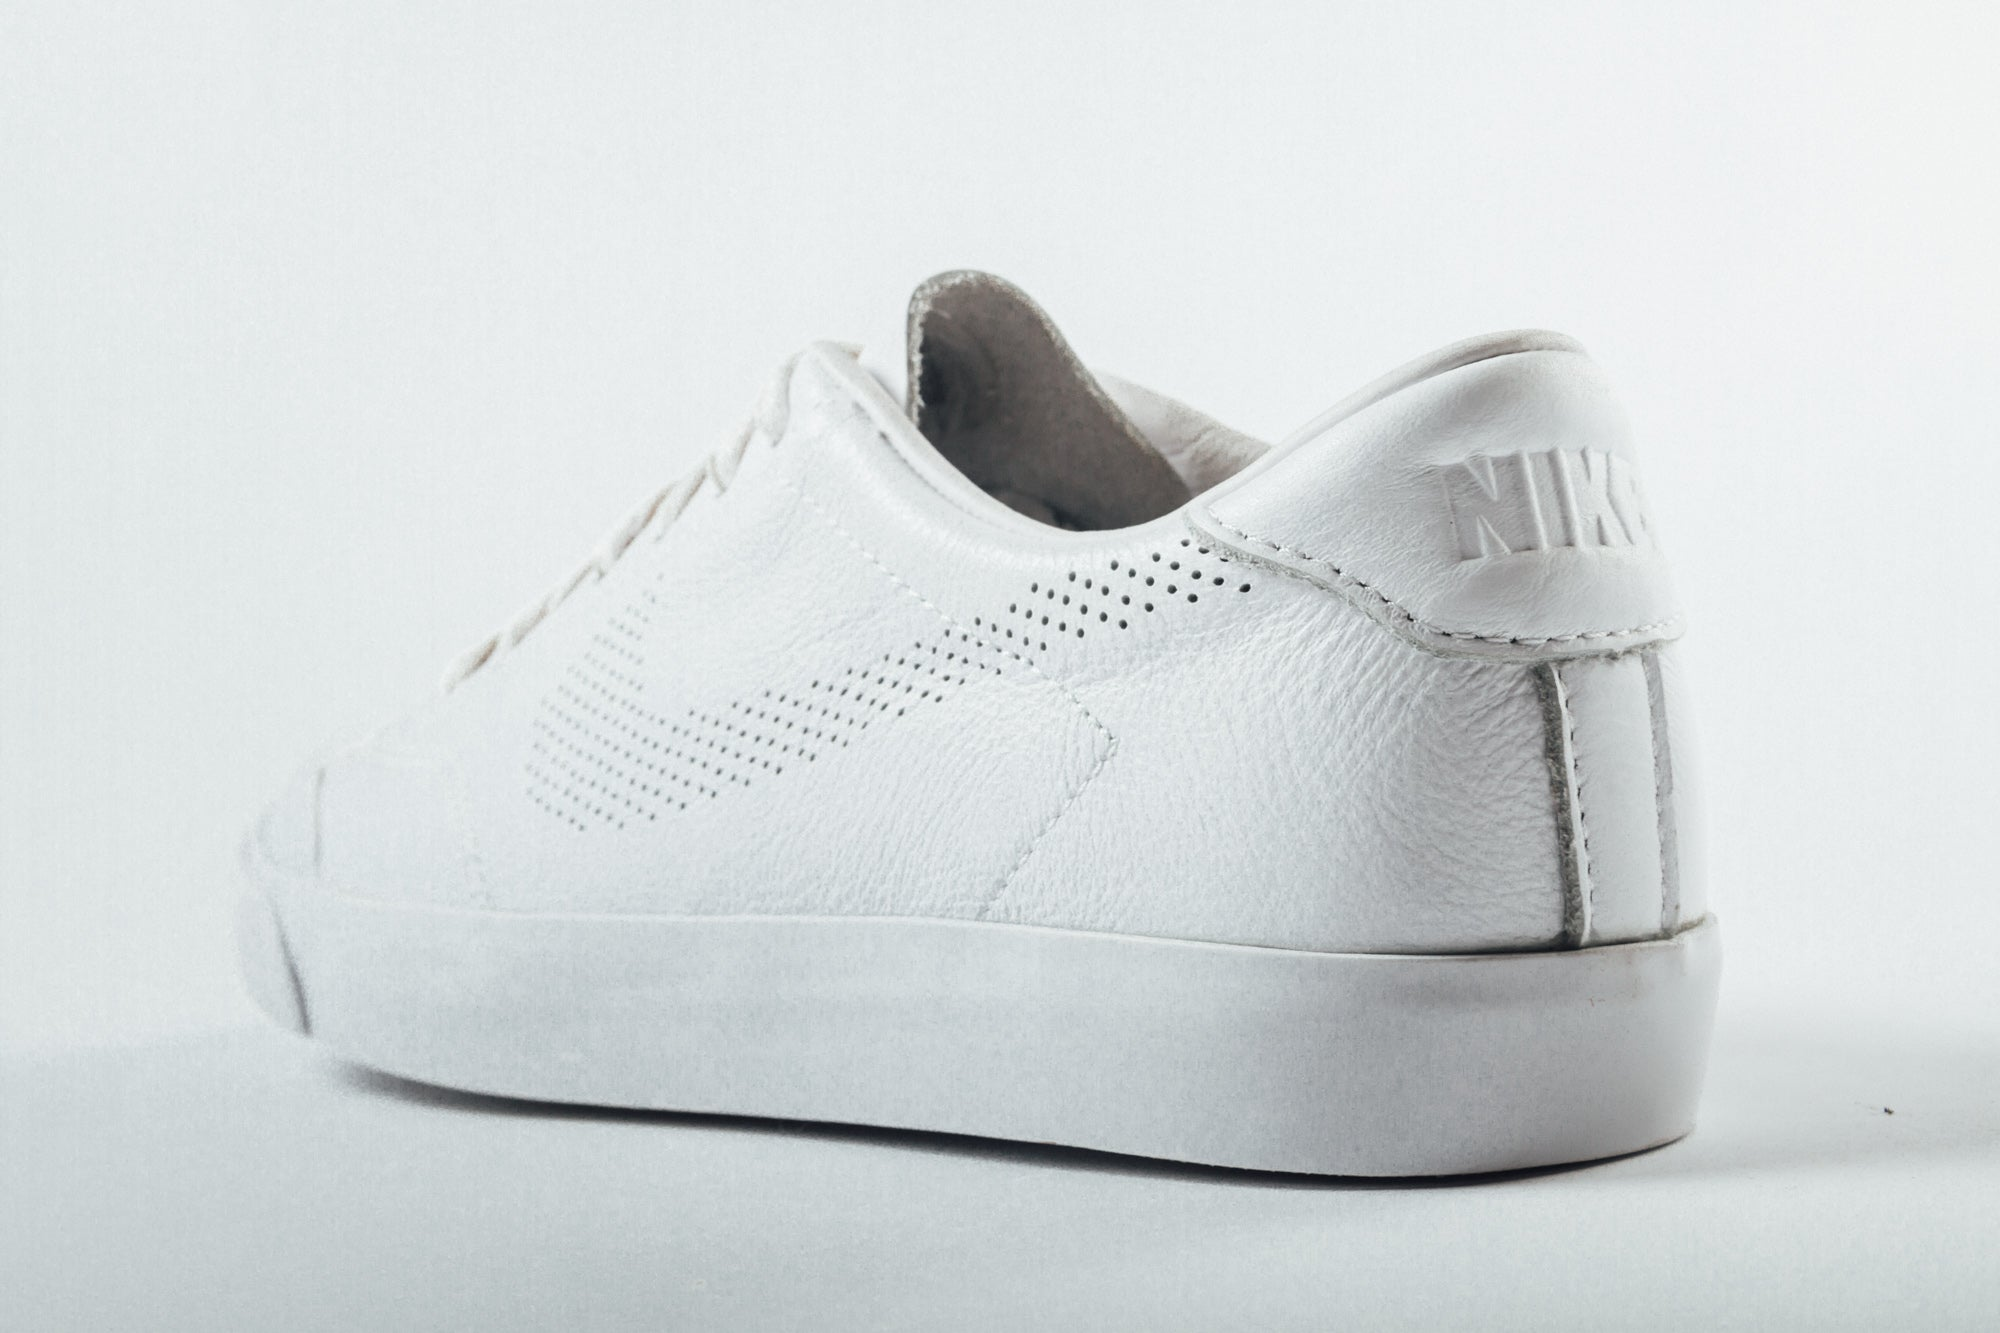 74f4cdd3246 Nike All Court 2 Low QS – KICKS OUT